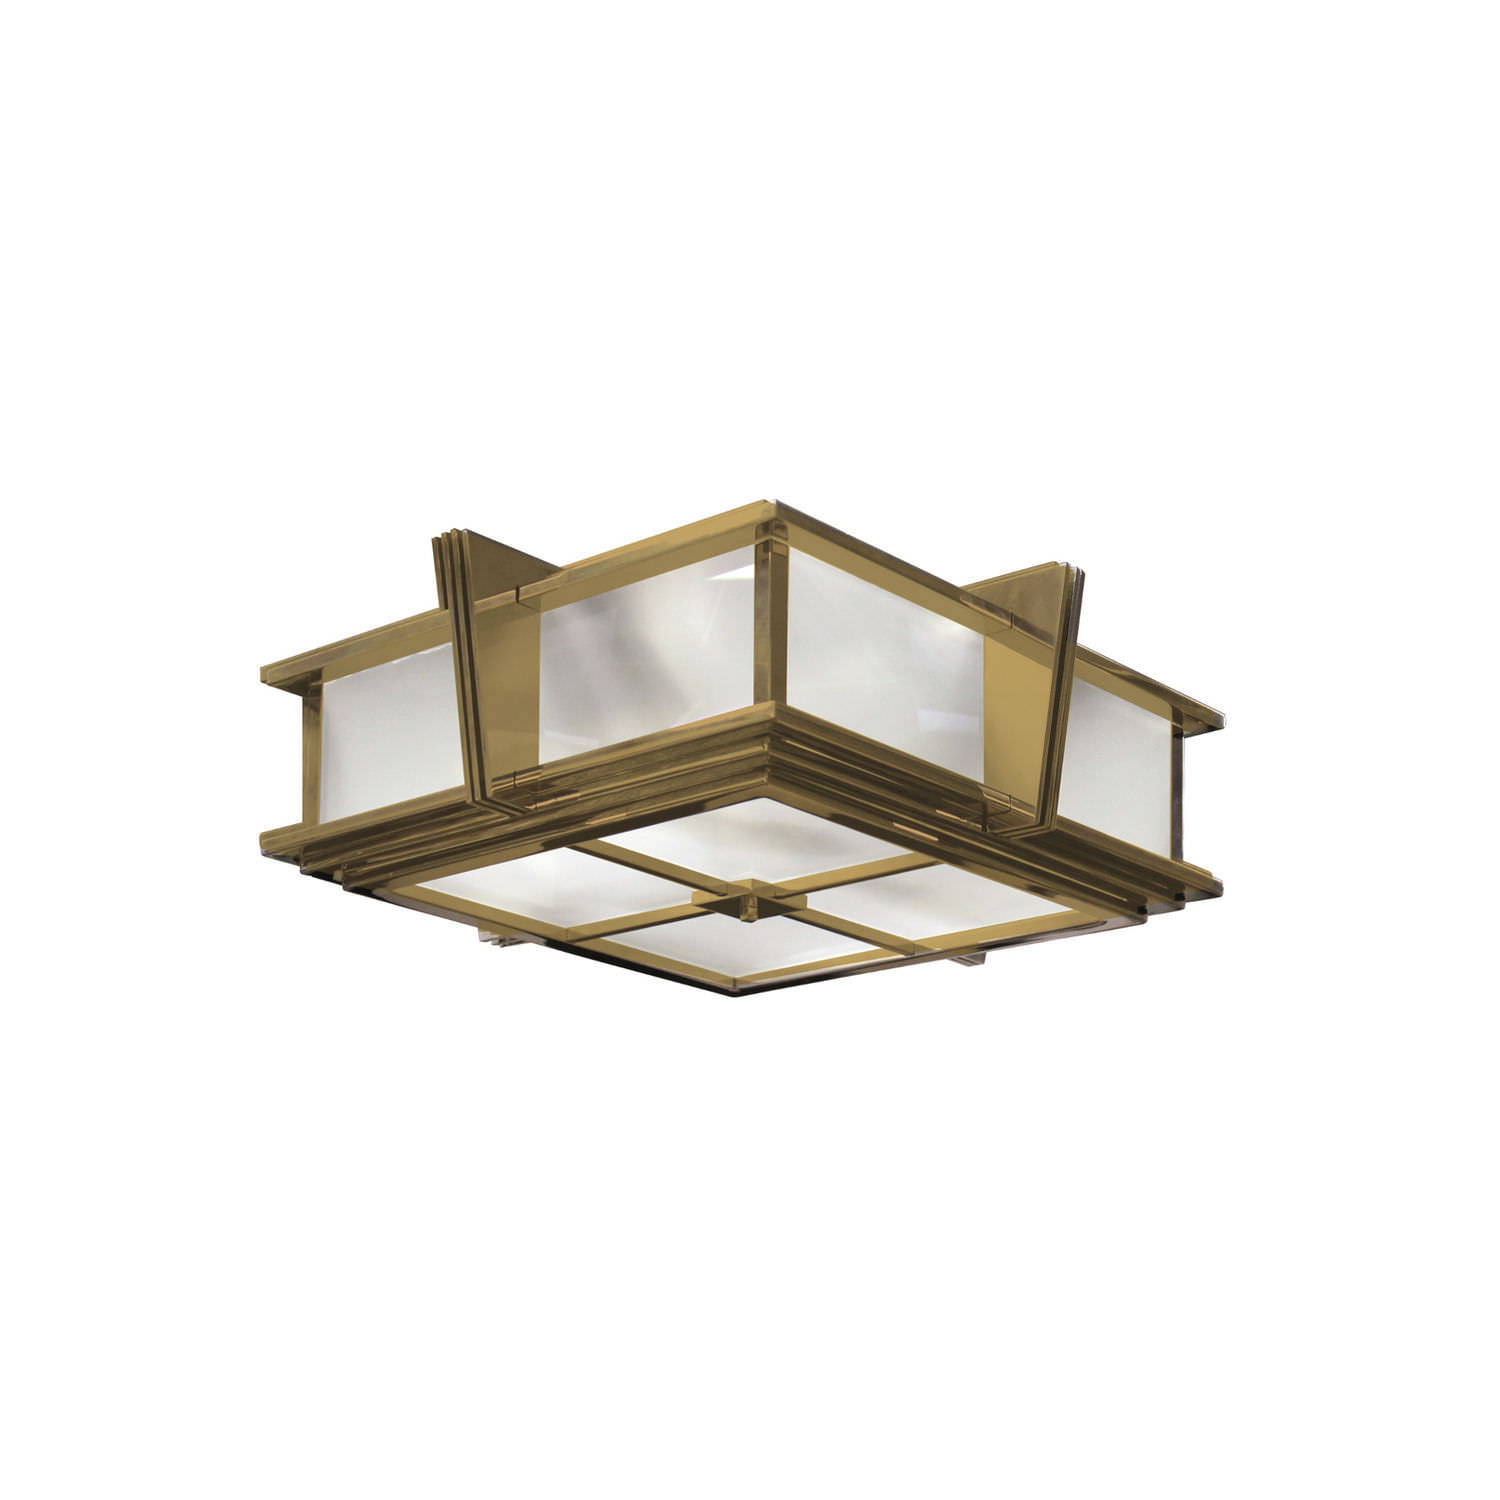 Art Deco Deckenleuchte Art Deco Ceiling Light - L002 - Sky Ii - Cygal Art Deco Gmbh & Co. Kg - Square / Glass / Brass